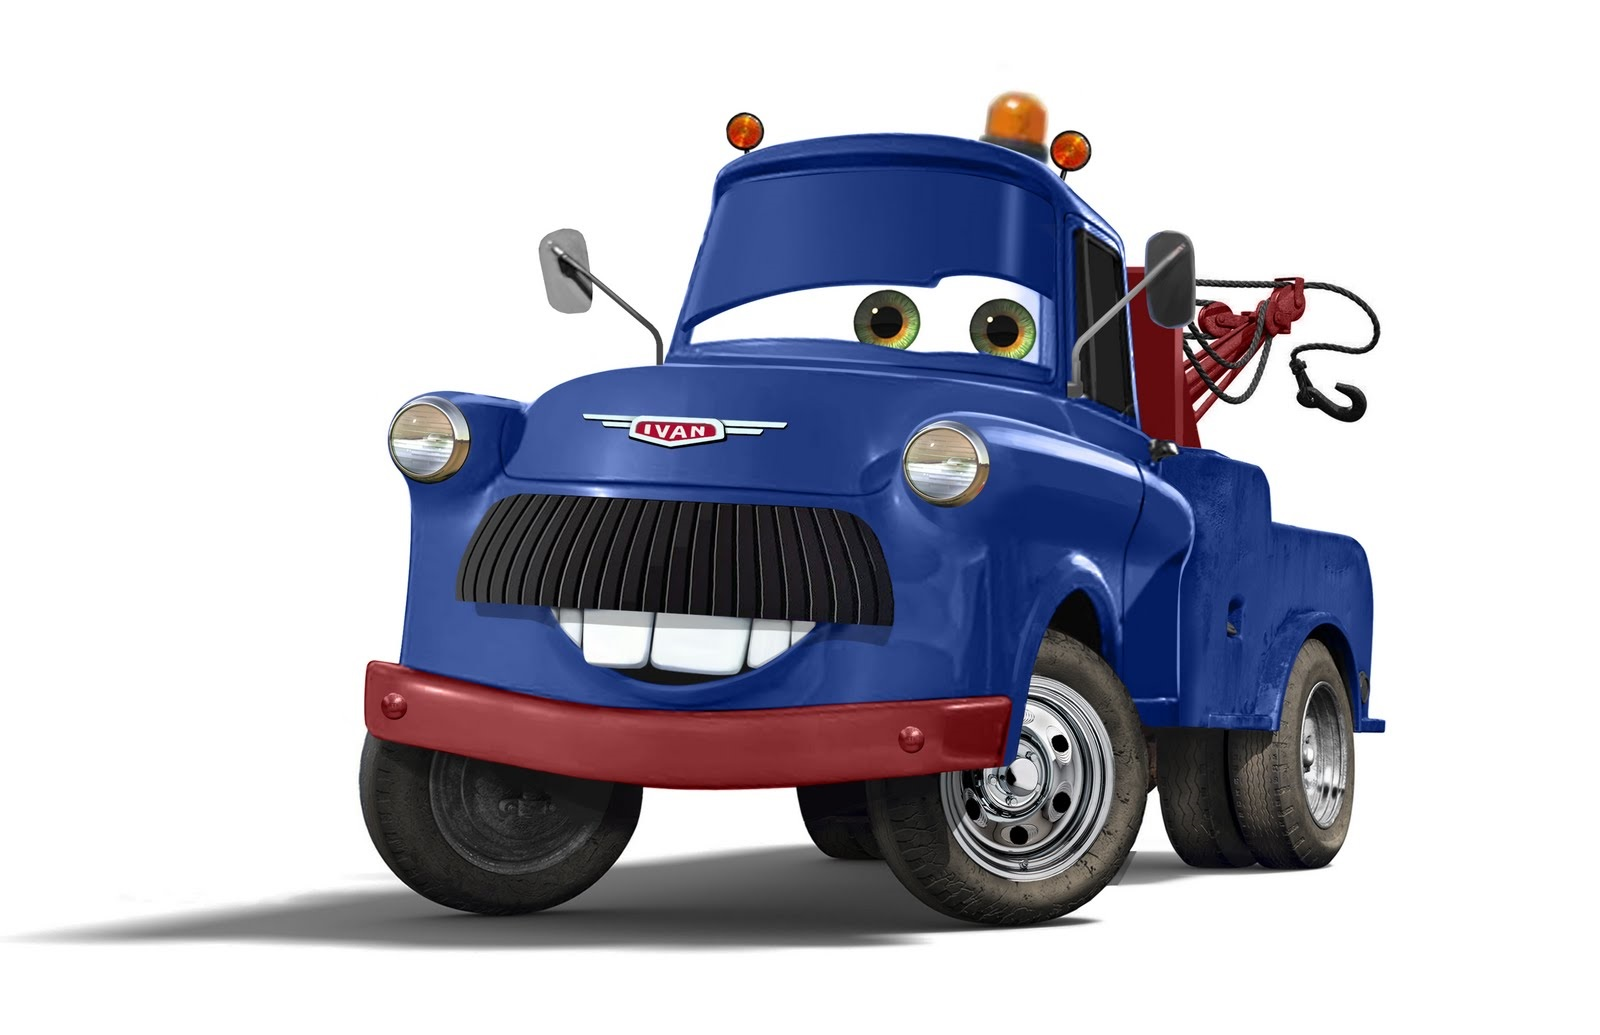 Disney Cars Mater Clip Art for Pinterest